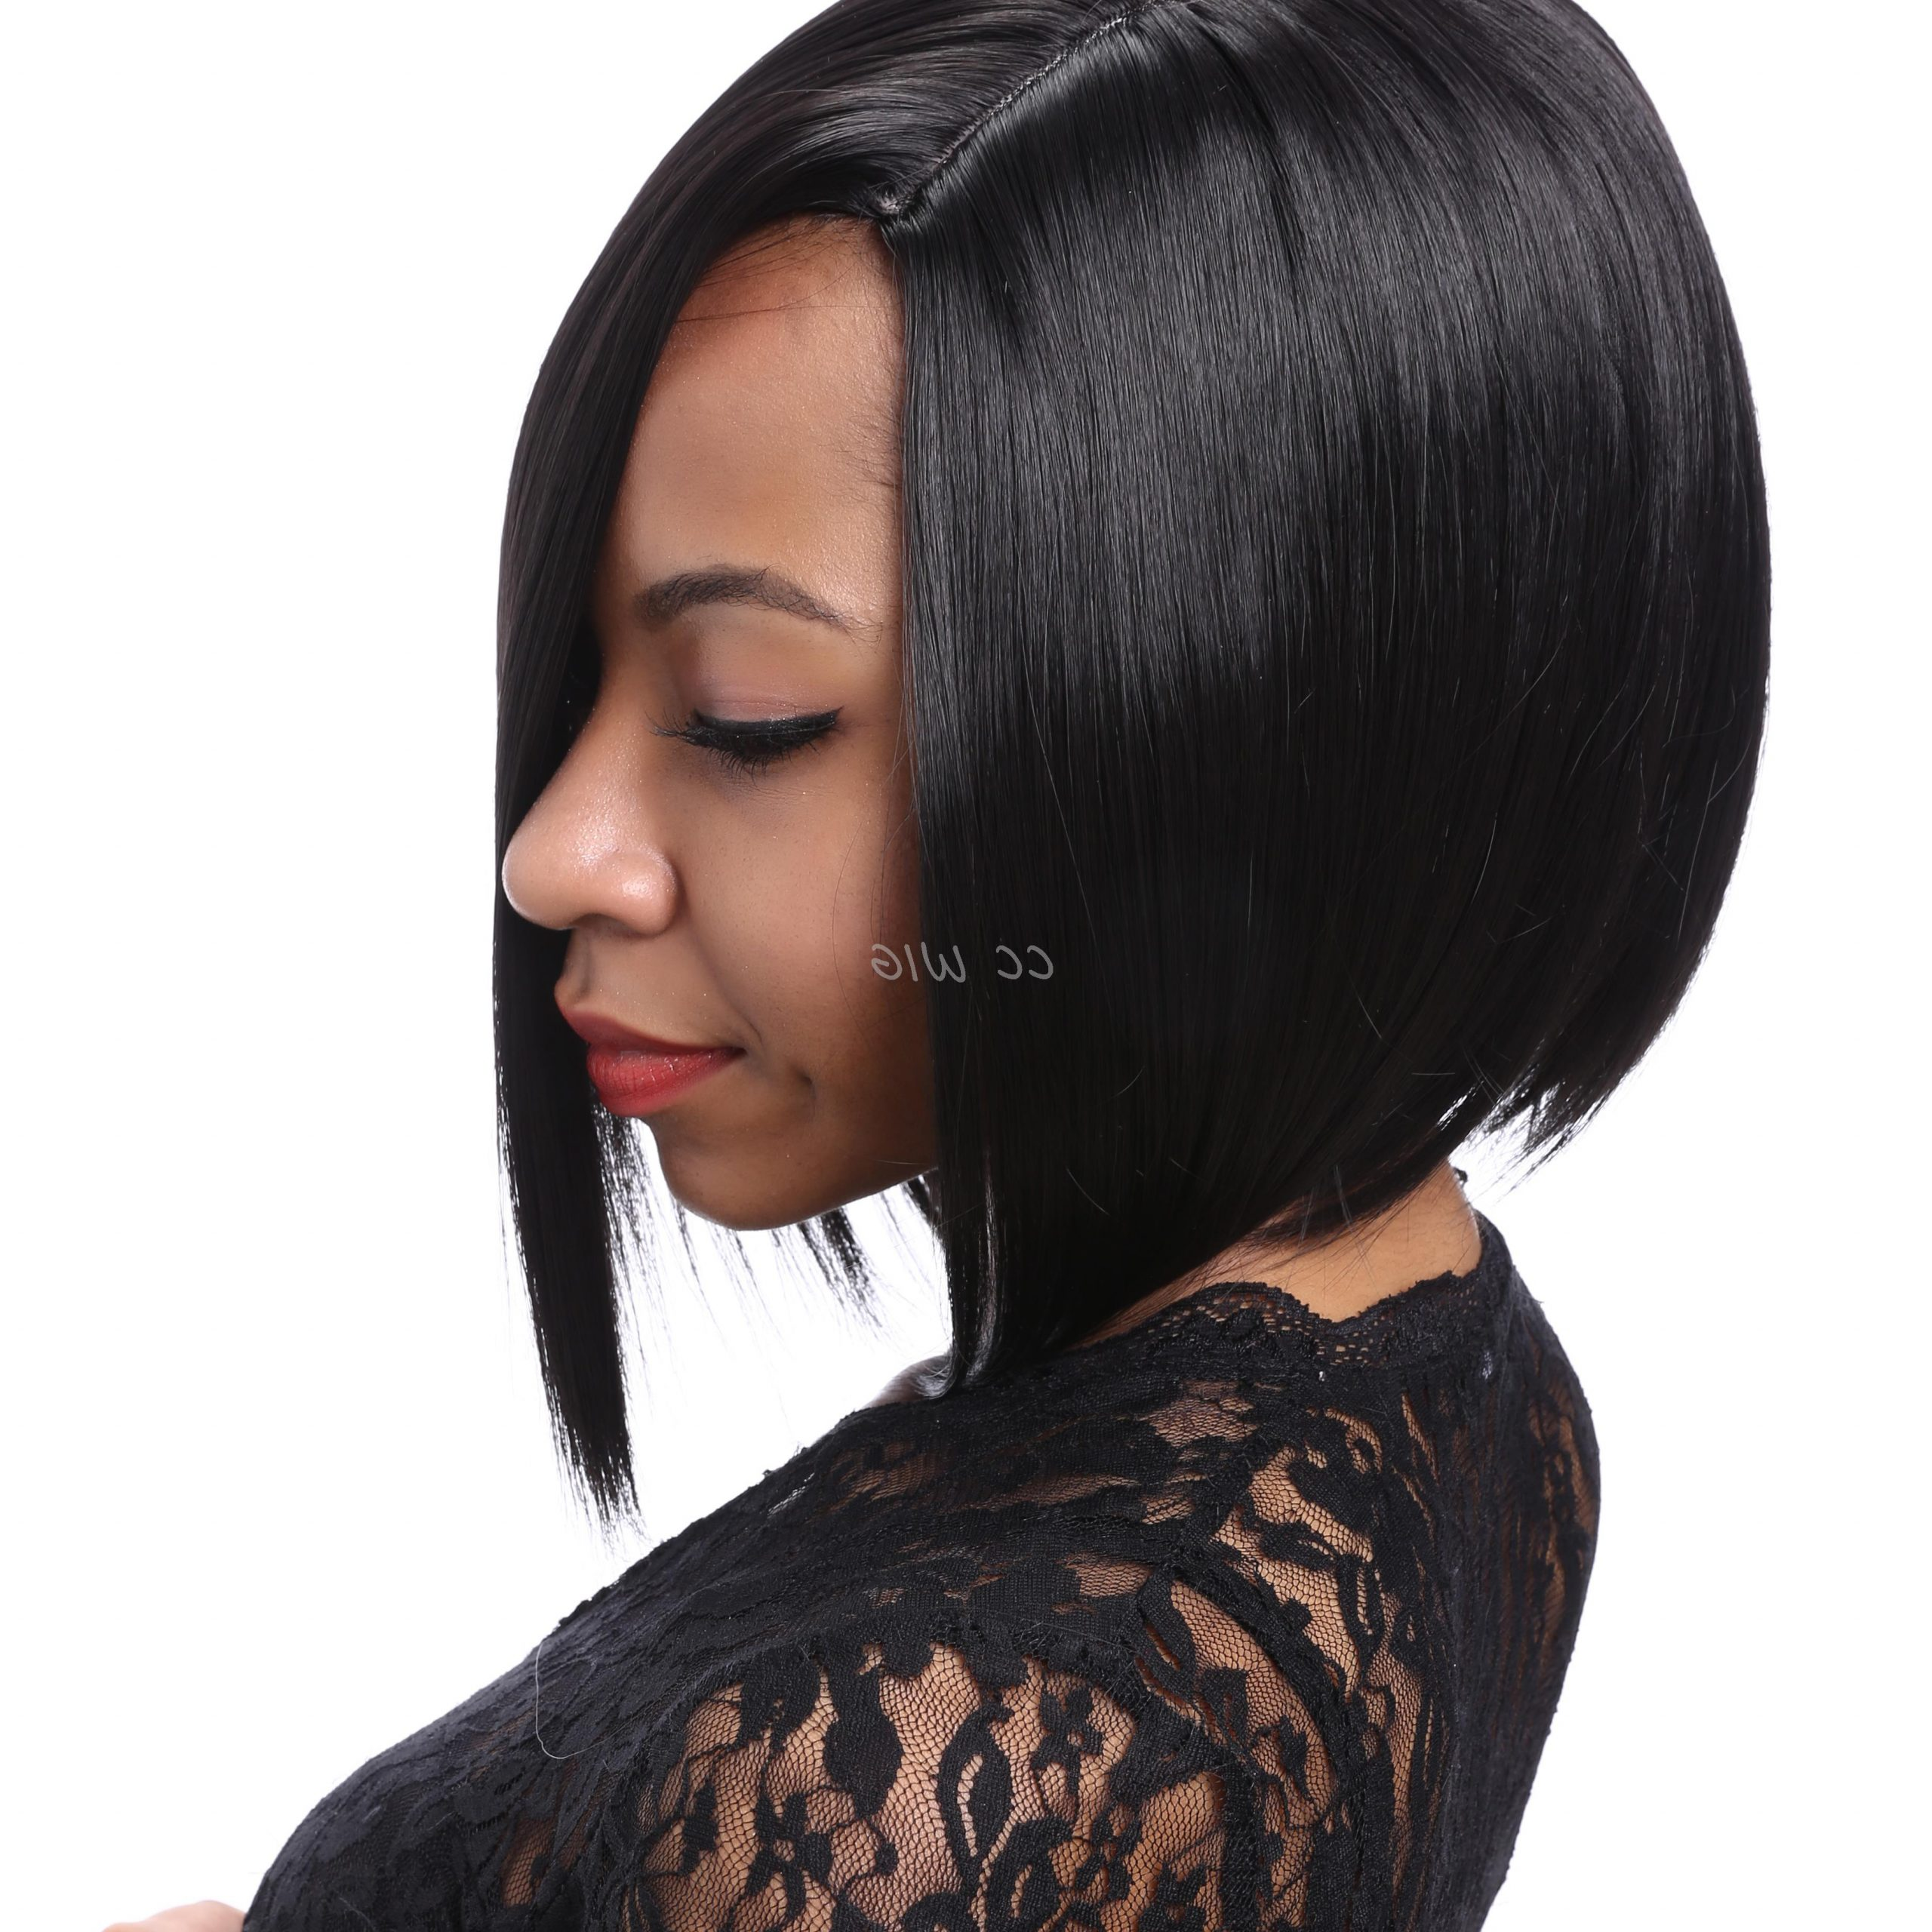 Short Black Bob Hairstyles Wig High Quality Wigs For Black Within Popular Natural Bob Hairstyles (View 15 of 20)